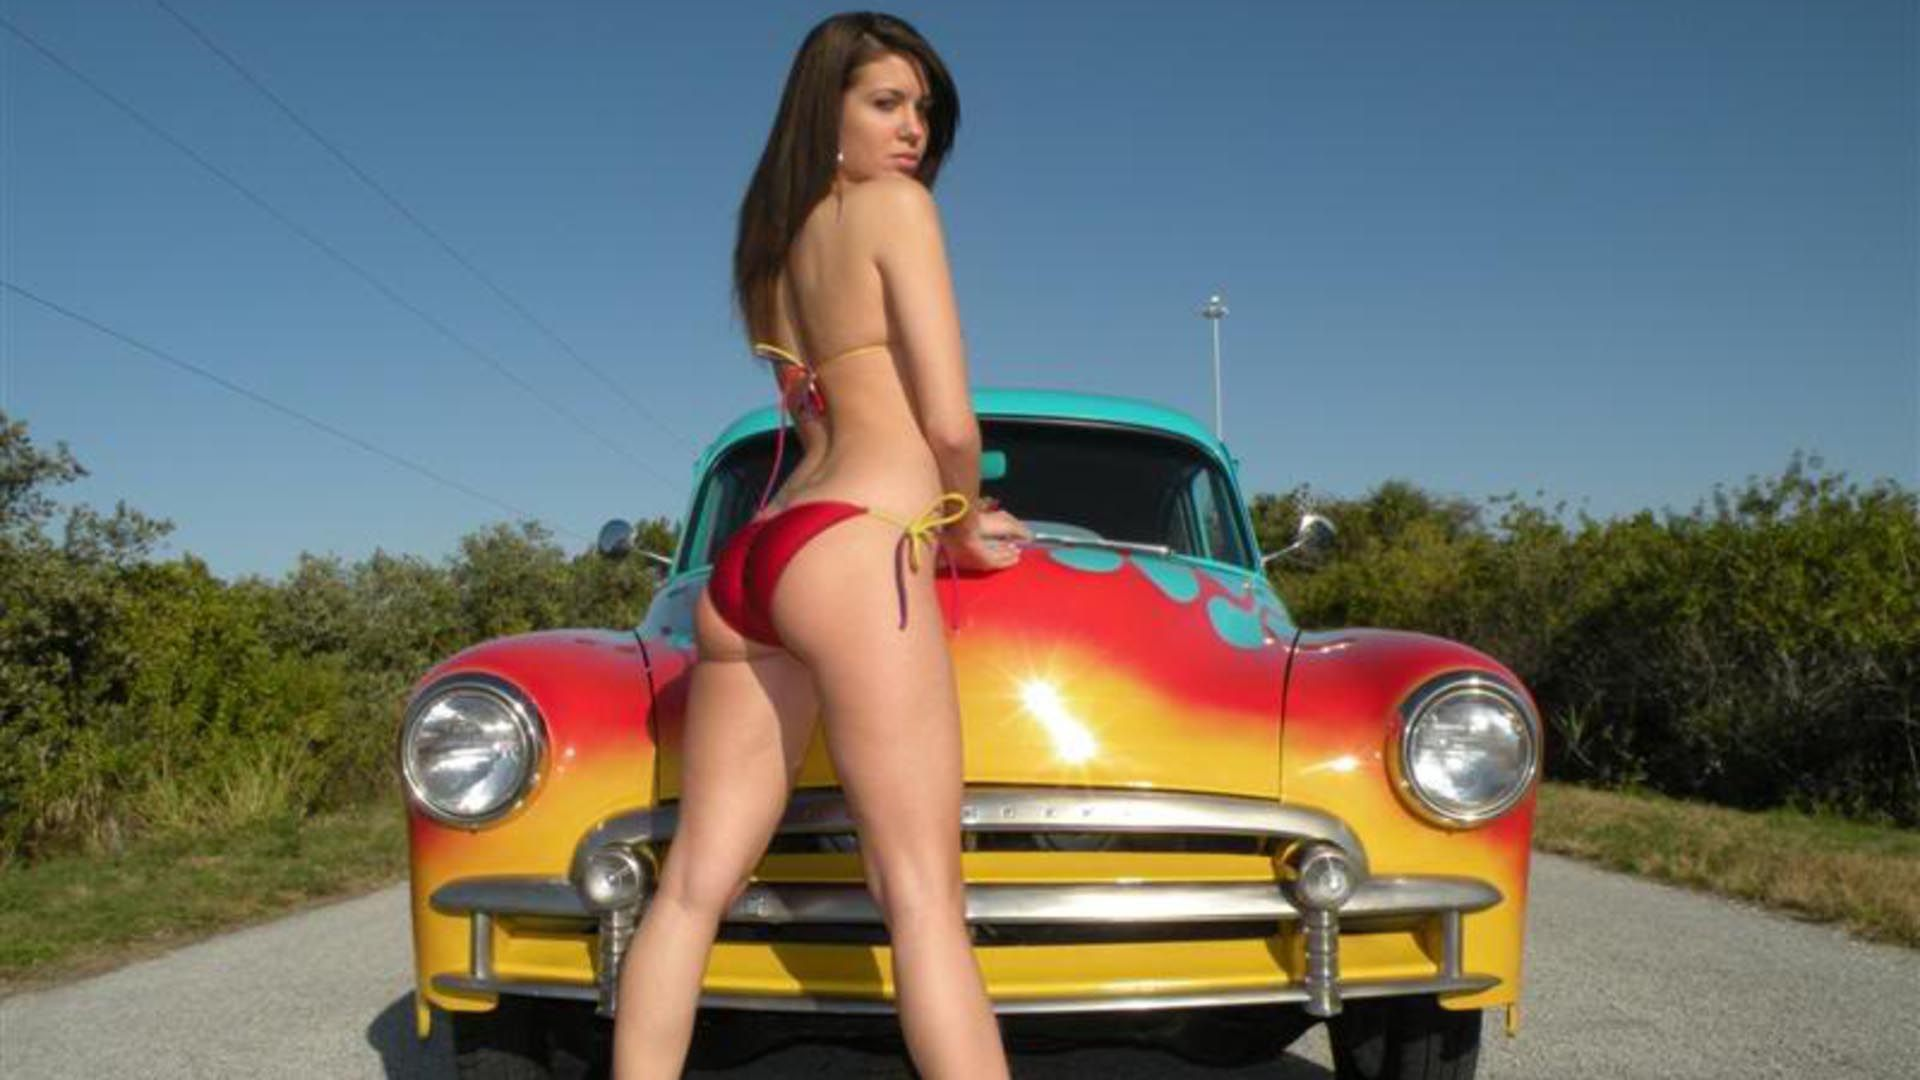 free nude girls with mustang cars